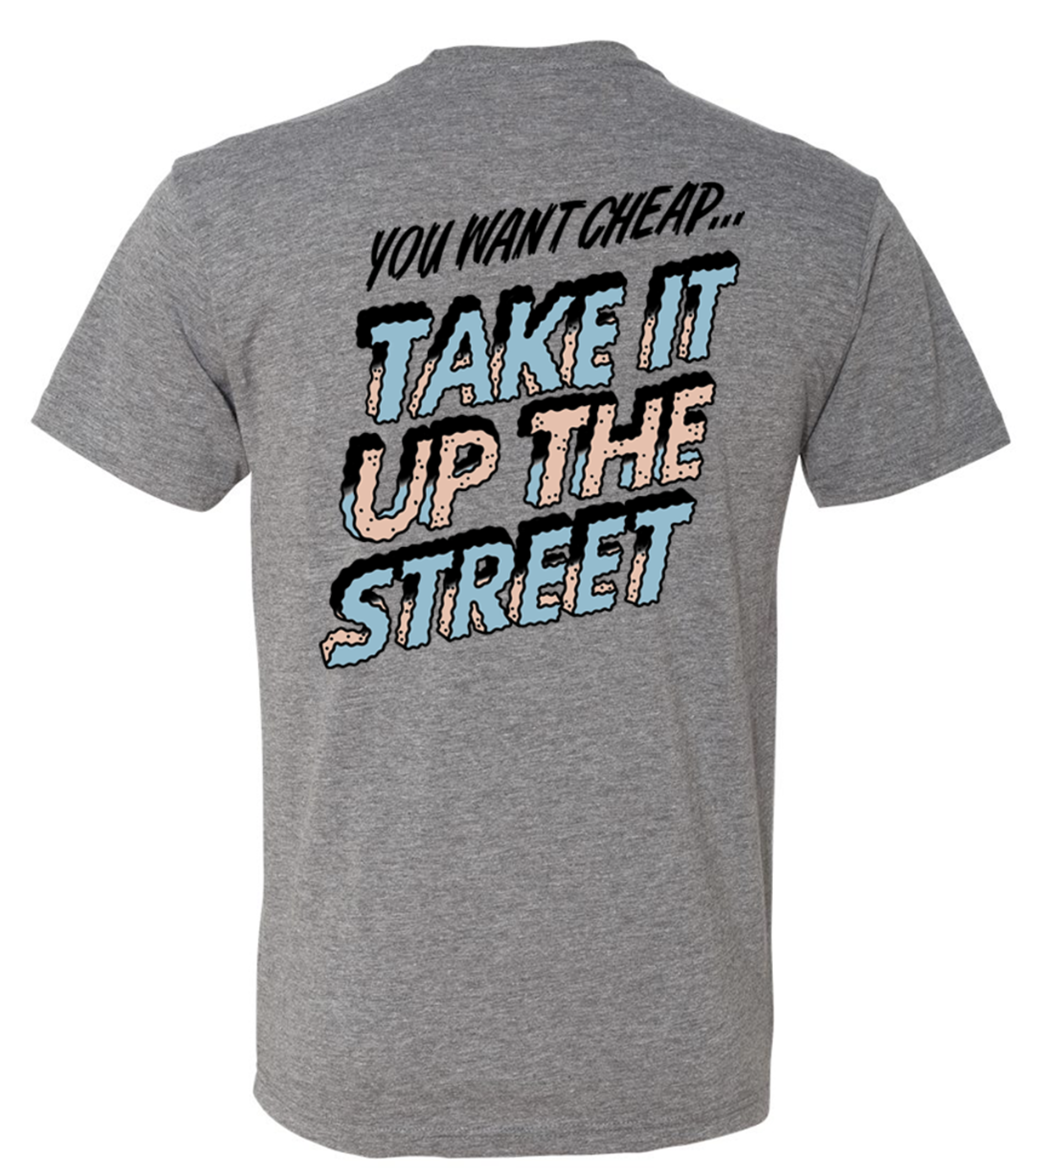 Image of Cheap - Short Sleeve